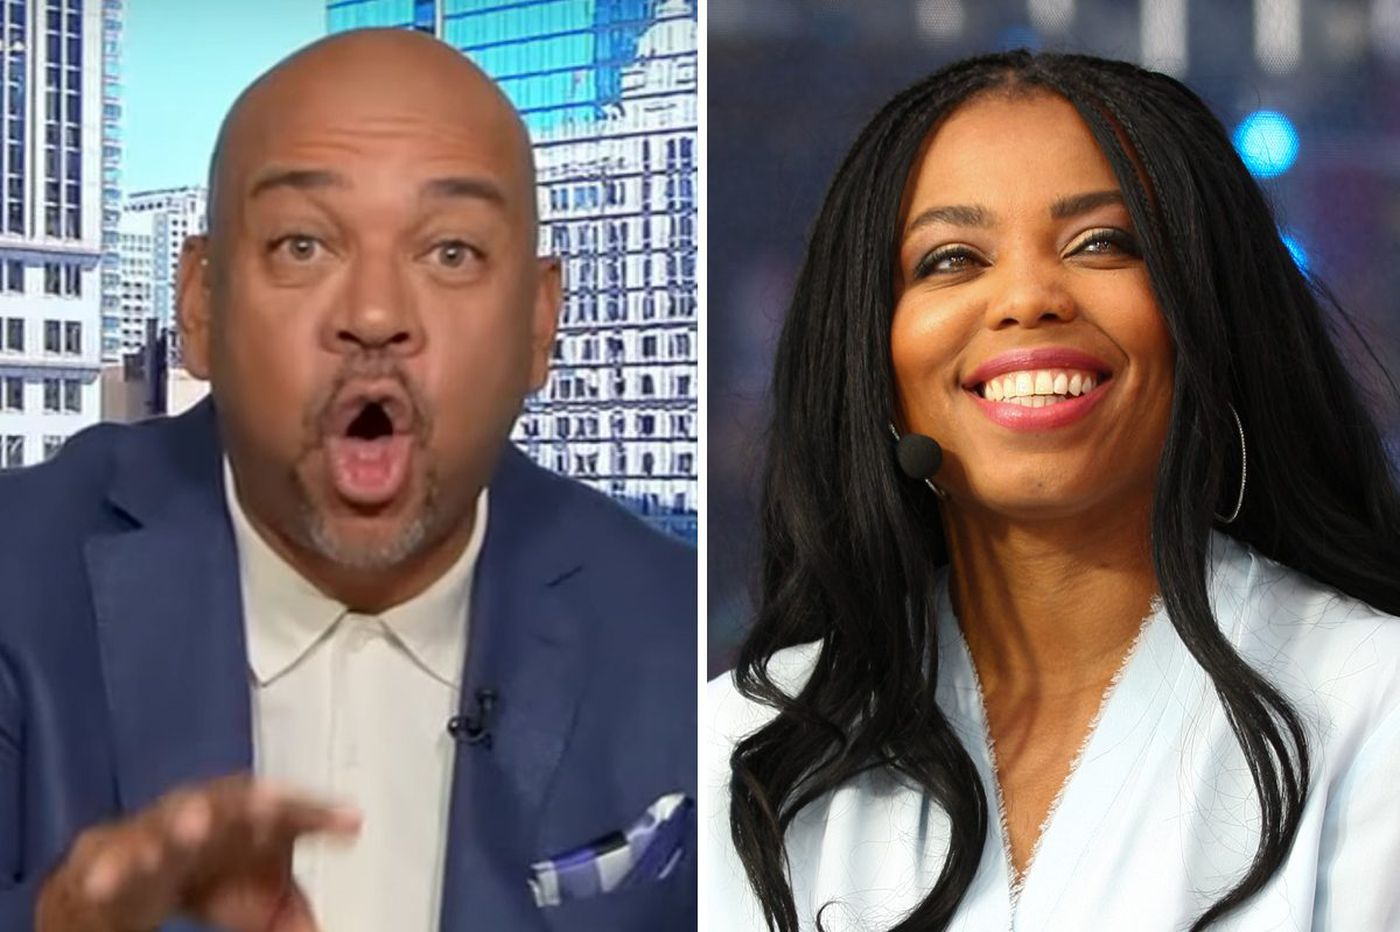 Michael Wilbon rips ESPN, Jemele Hill opens up about suspension